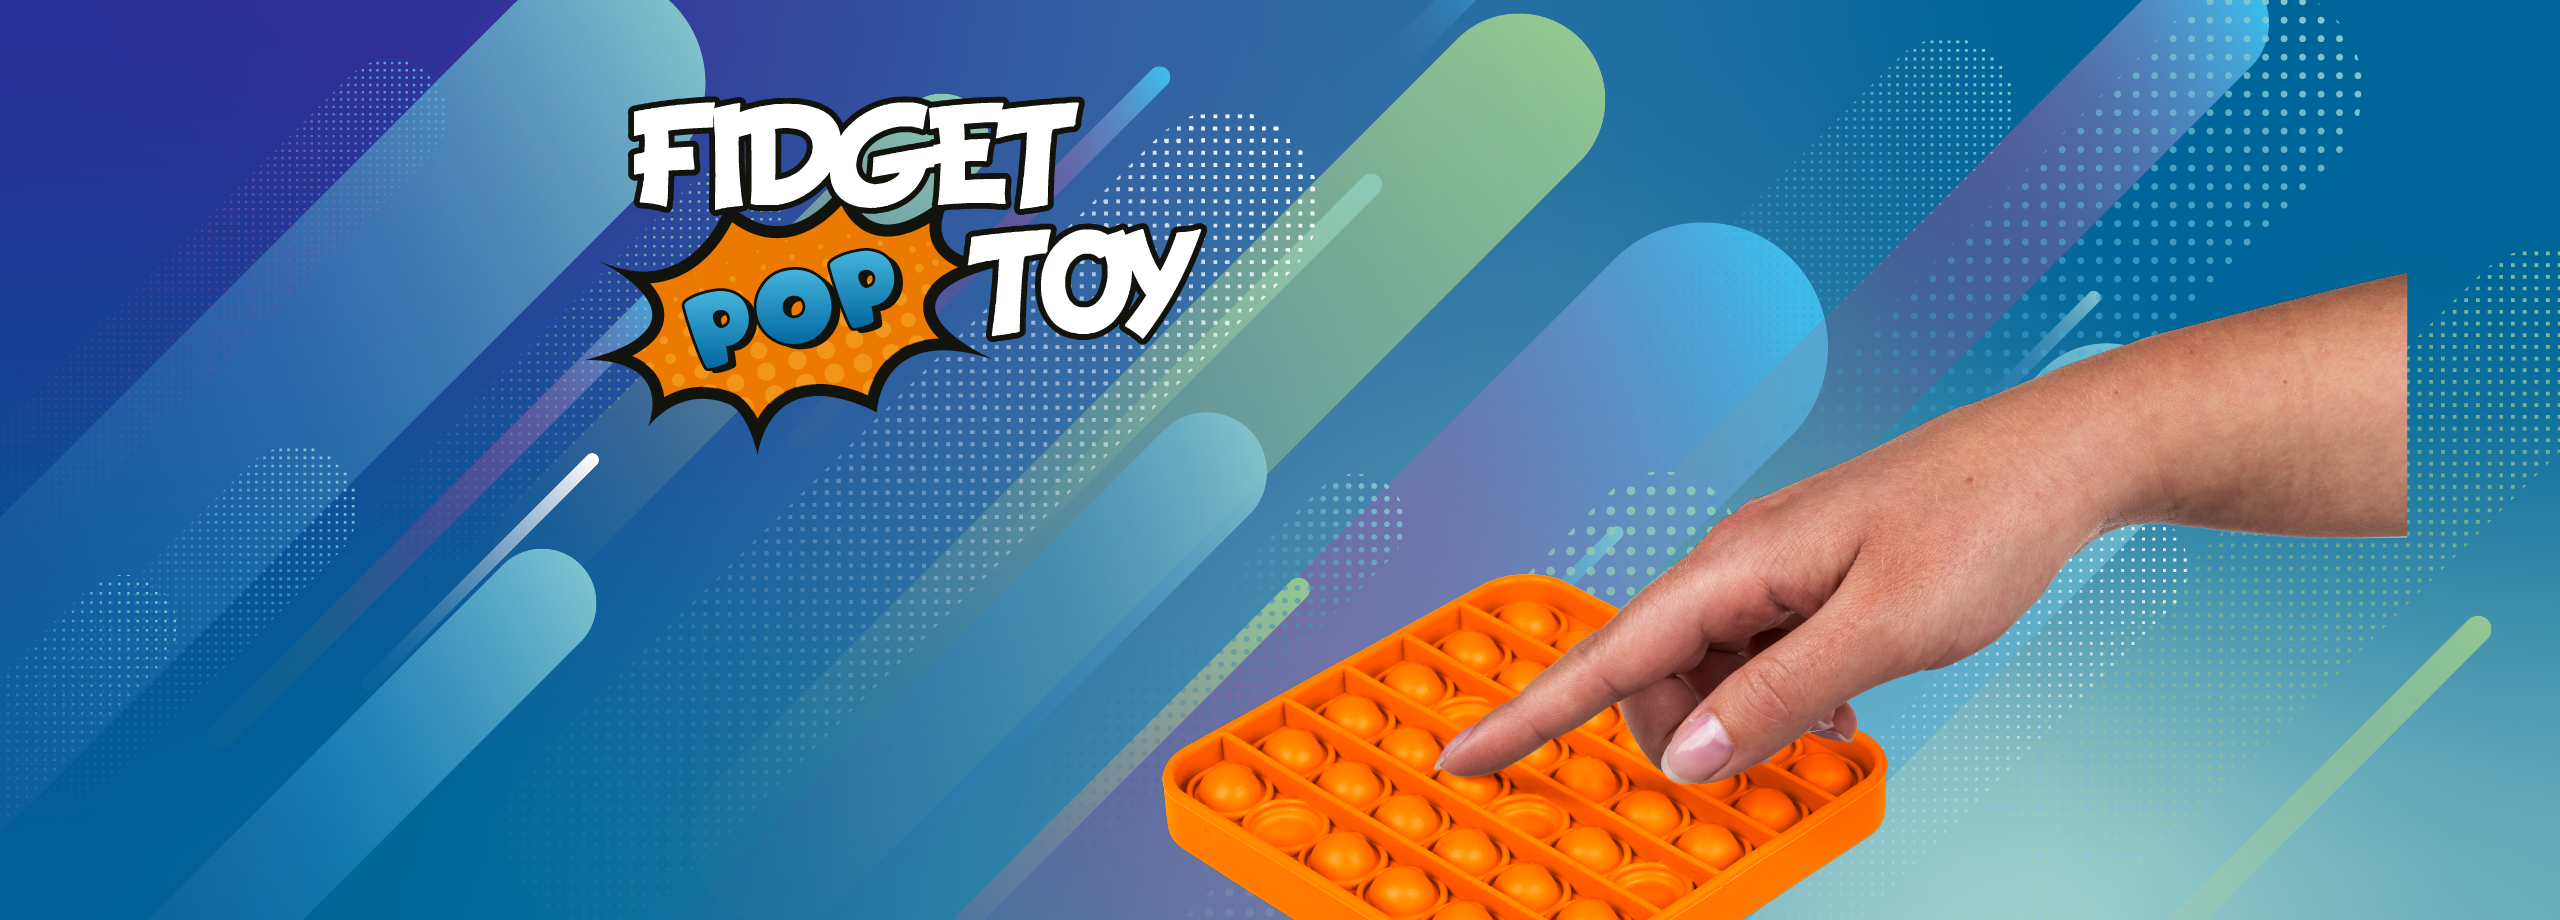 Homepage Header - Fidget Pop Toy